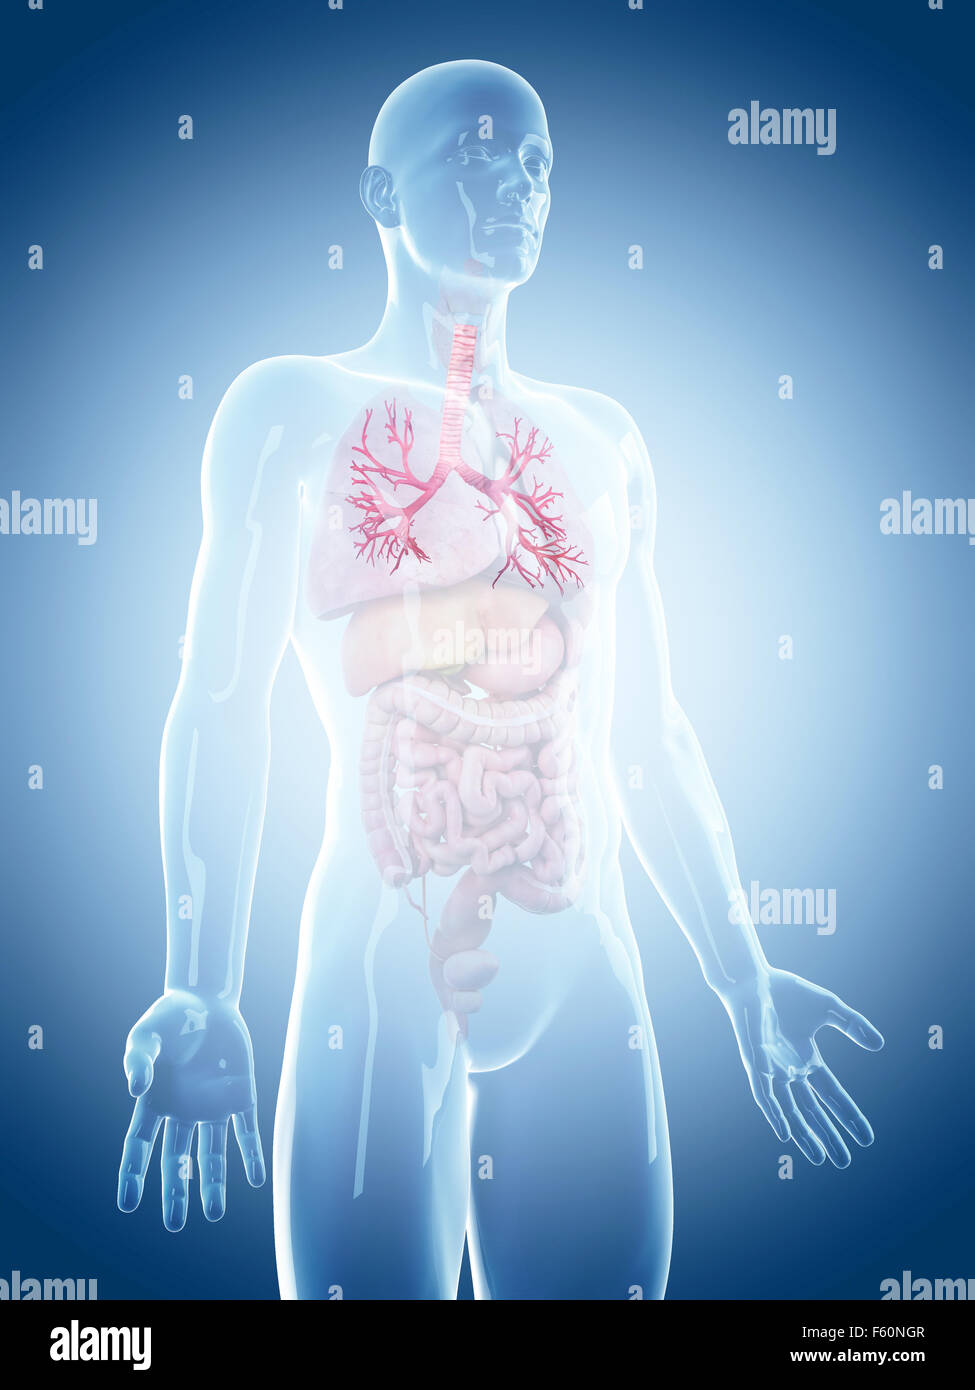 medically accurate illustration of the bronchi - Stock Image